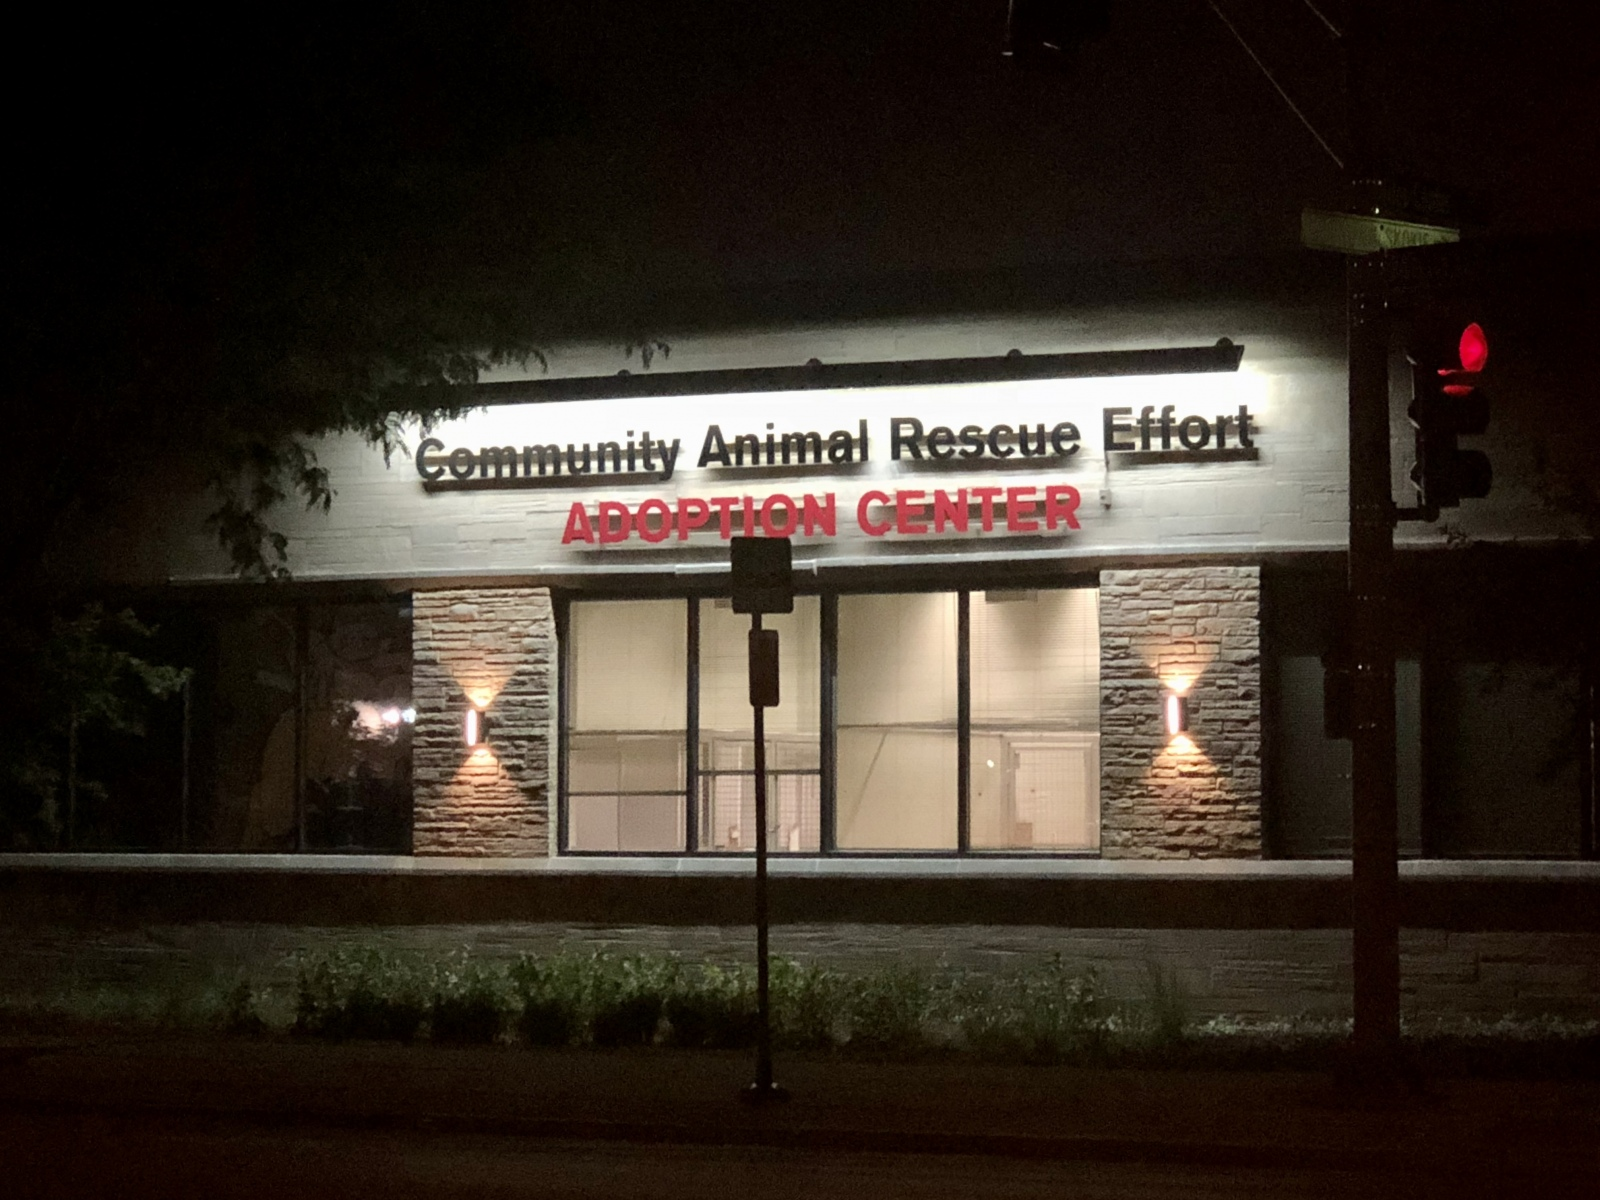 Building Sign Night View - Community Animal Rescue Effort Adoption Center Custom Home. America's Custom Home Builders: New Construction, Remodeling, Restoration Services. Residential and Commercial.